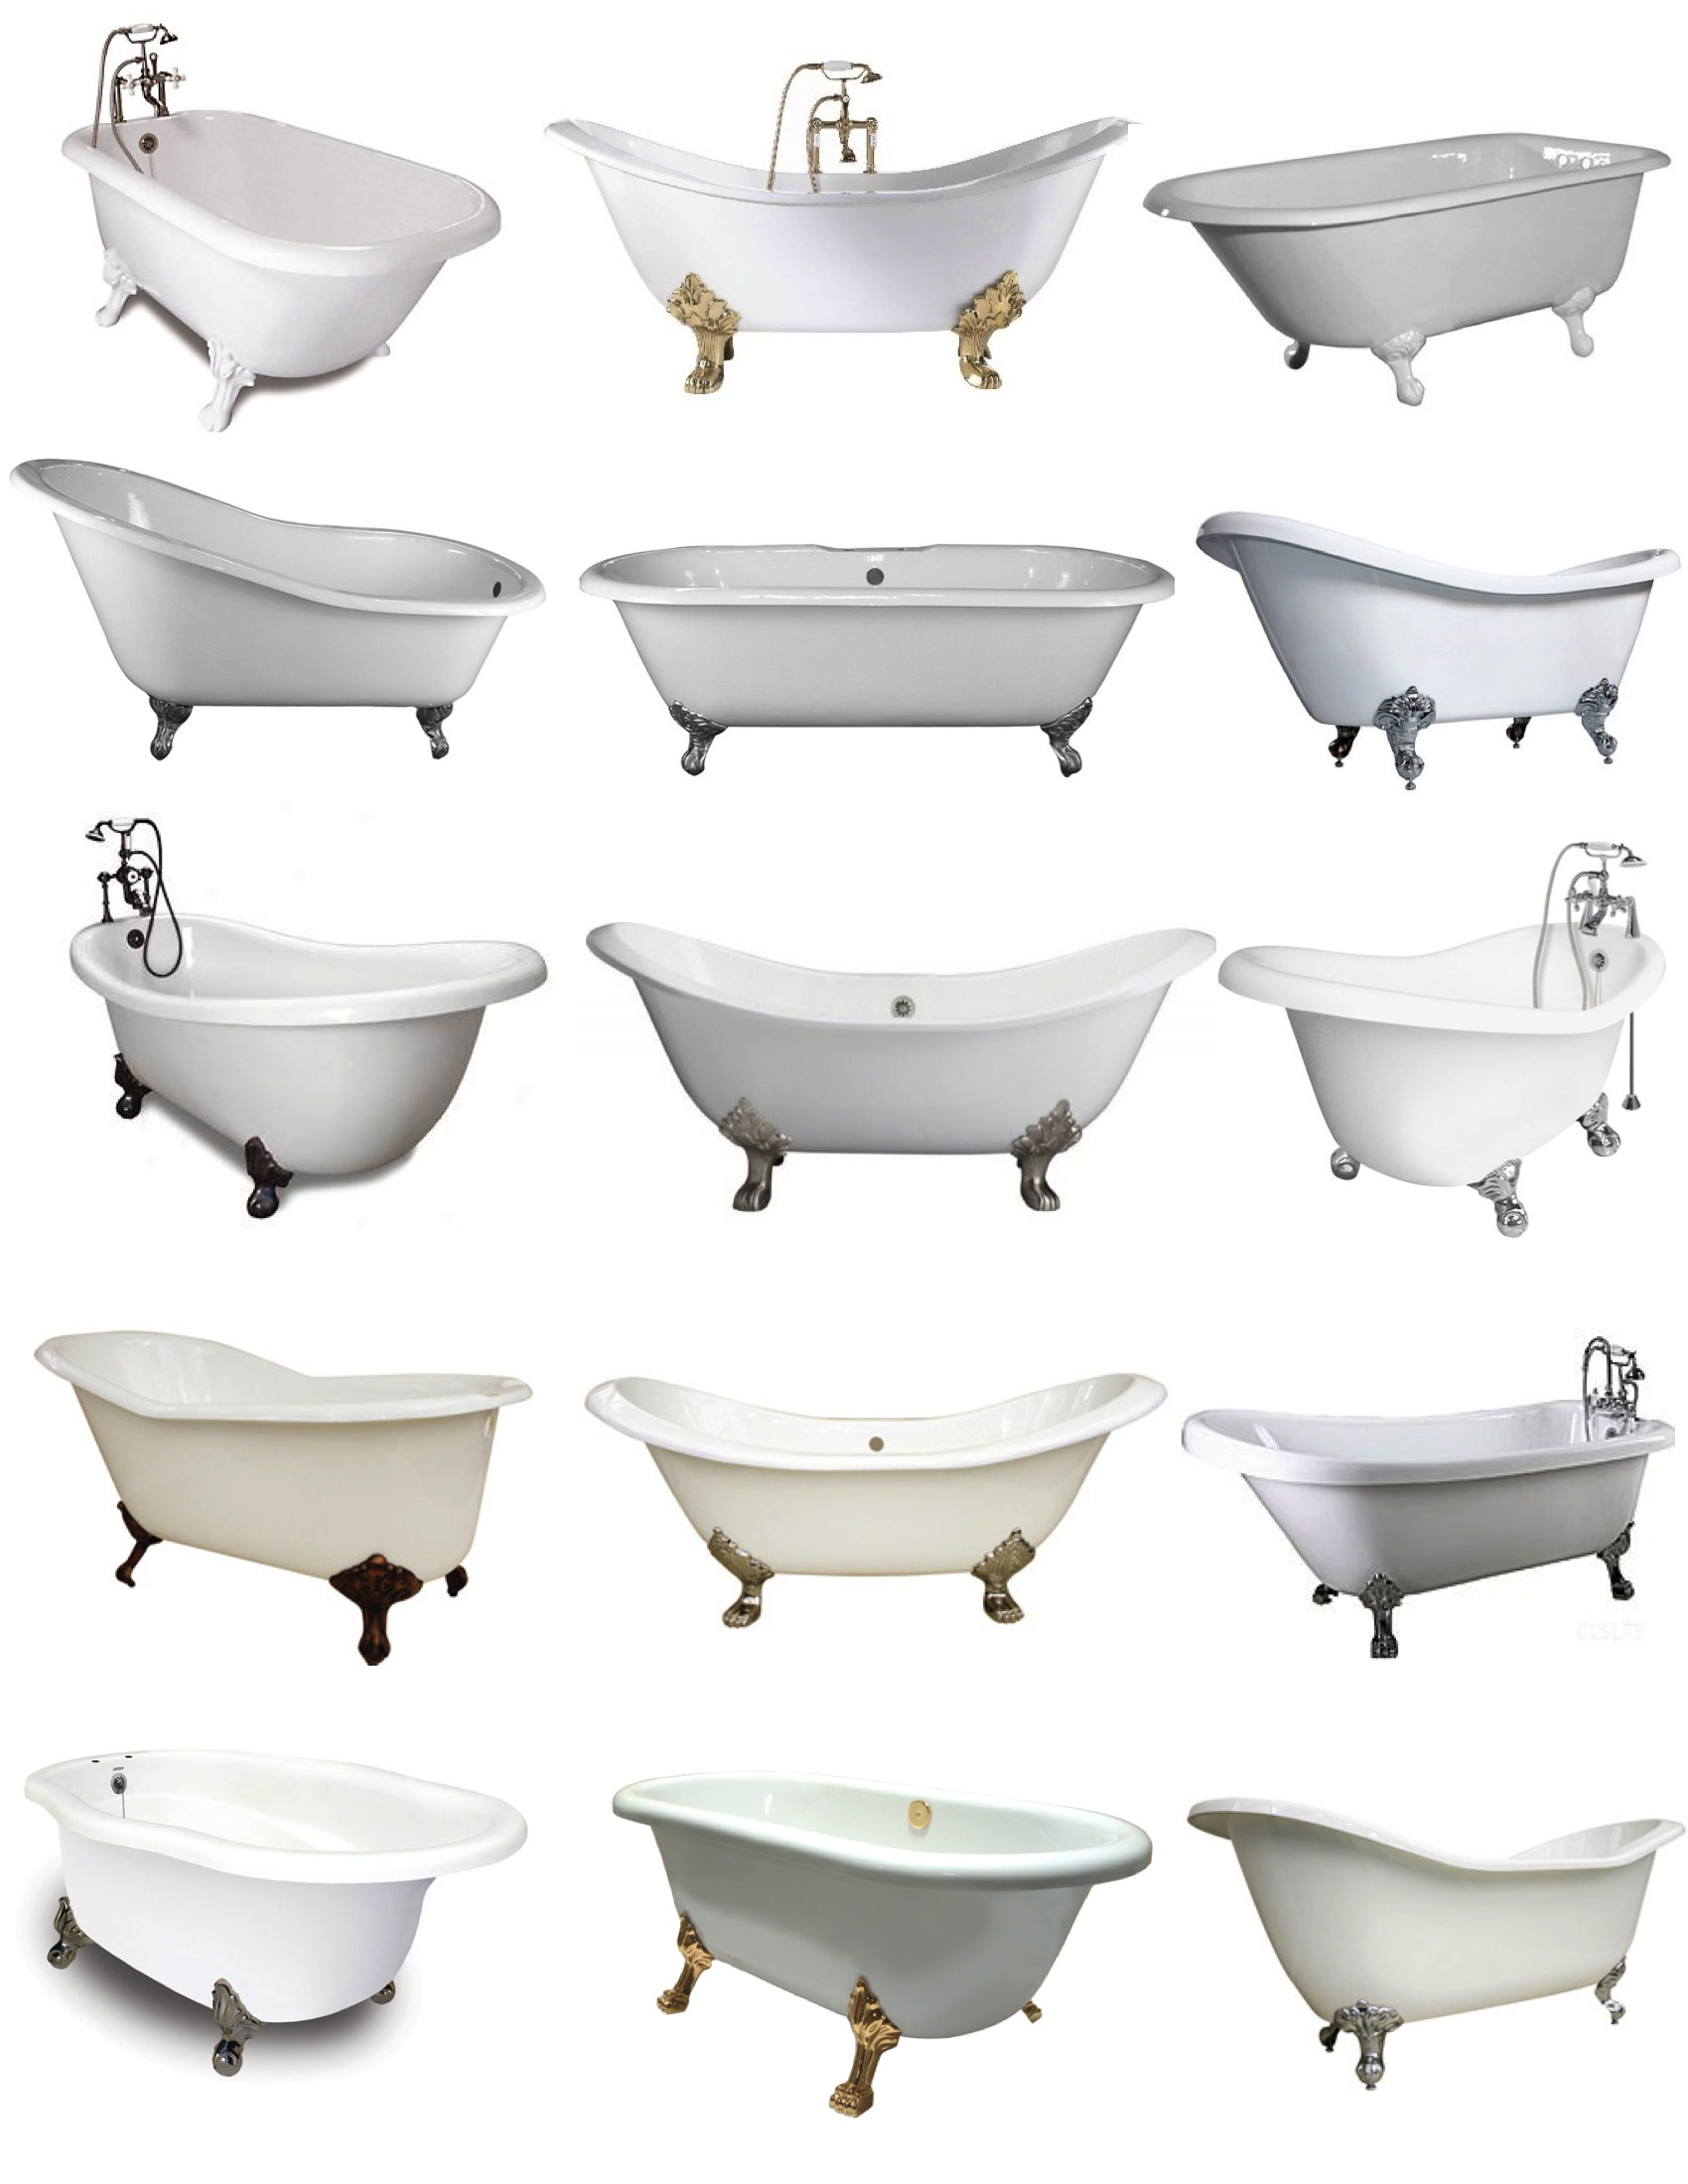 Charming Paint Bathtub Thick Paint For Bathtub Solid Bathtub Refinishers Paint A Bathtub Youthful Paint For Tubs Purple Painting A Tub